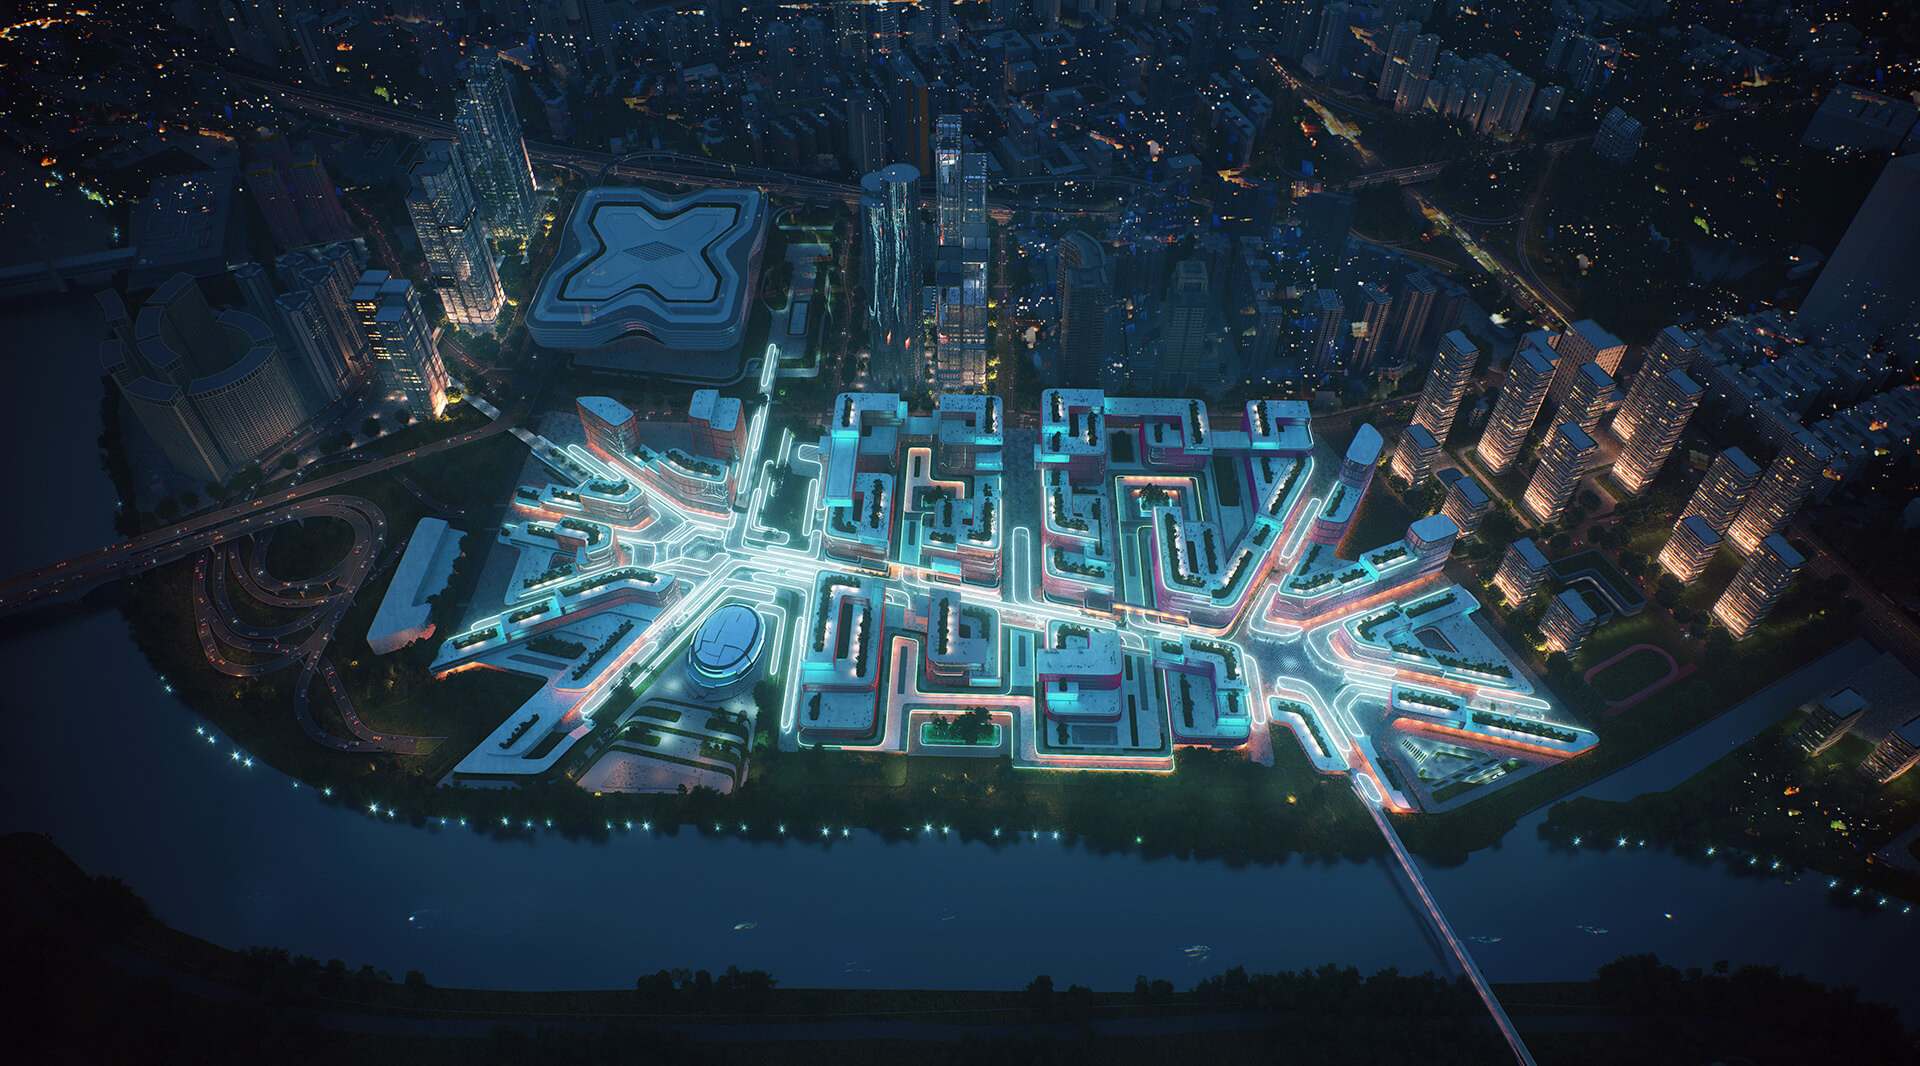 The Huanggang Port Area promises to be a hub for science and technology in Shenzhen | Huanggang Port Area Masterplan | Zaha Hadid Architects | STIRworld